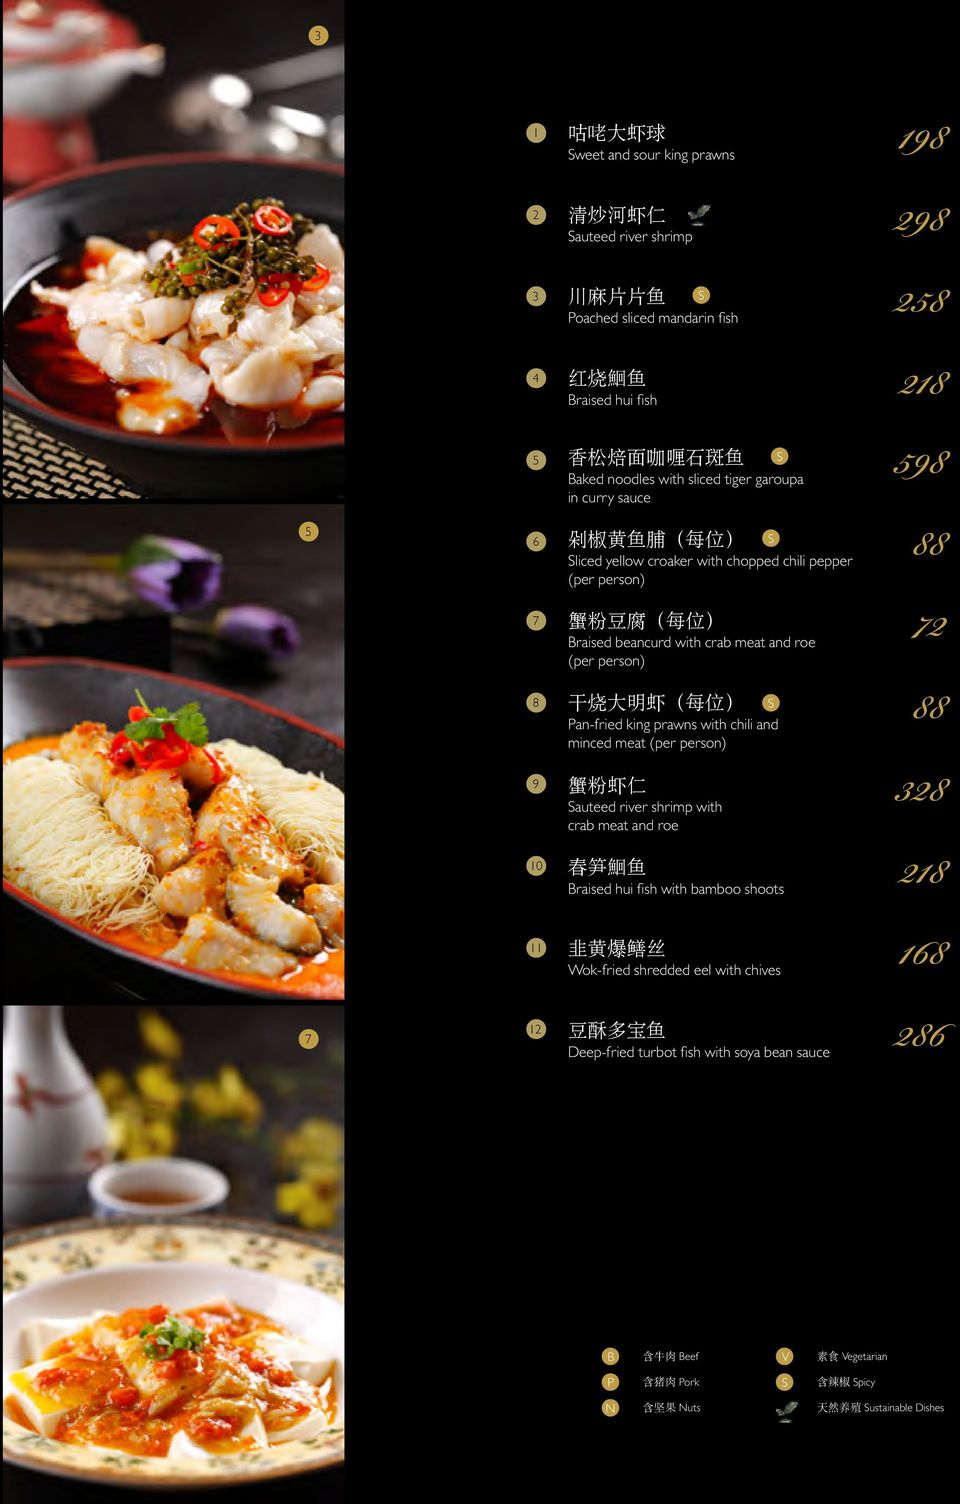 每 位 ) S an-fried king prawns with chili and minced meat 蟹 粉 虾 仁 Sauteed river shrimp with crab meat and roe 598 88 72 88 328 218 春 笋 鮰 鱼 Braised hui fish with bamboo shoots S 7 11 12 168 韭 黄